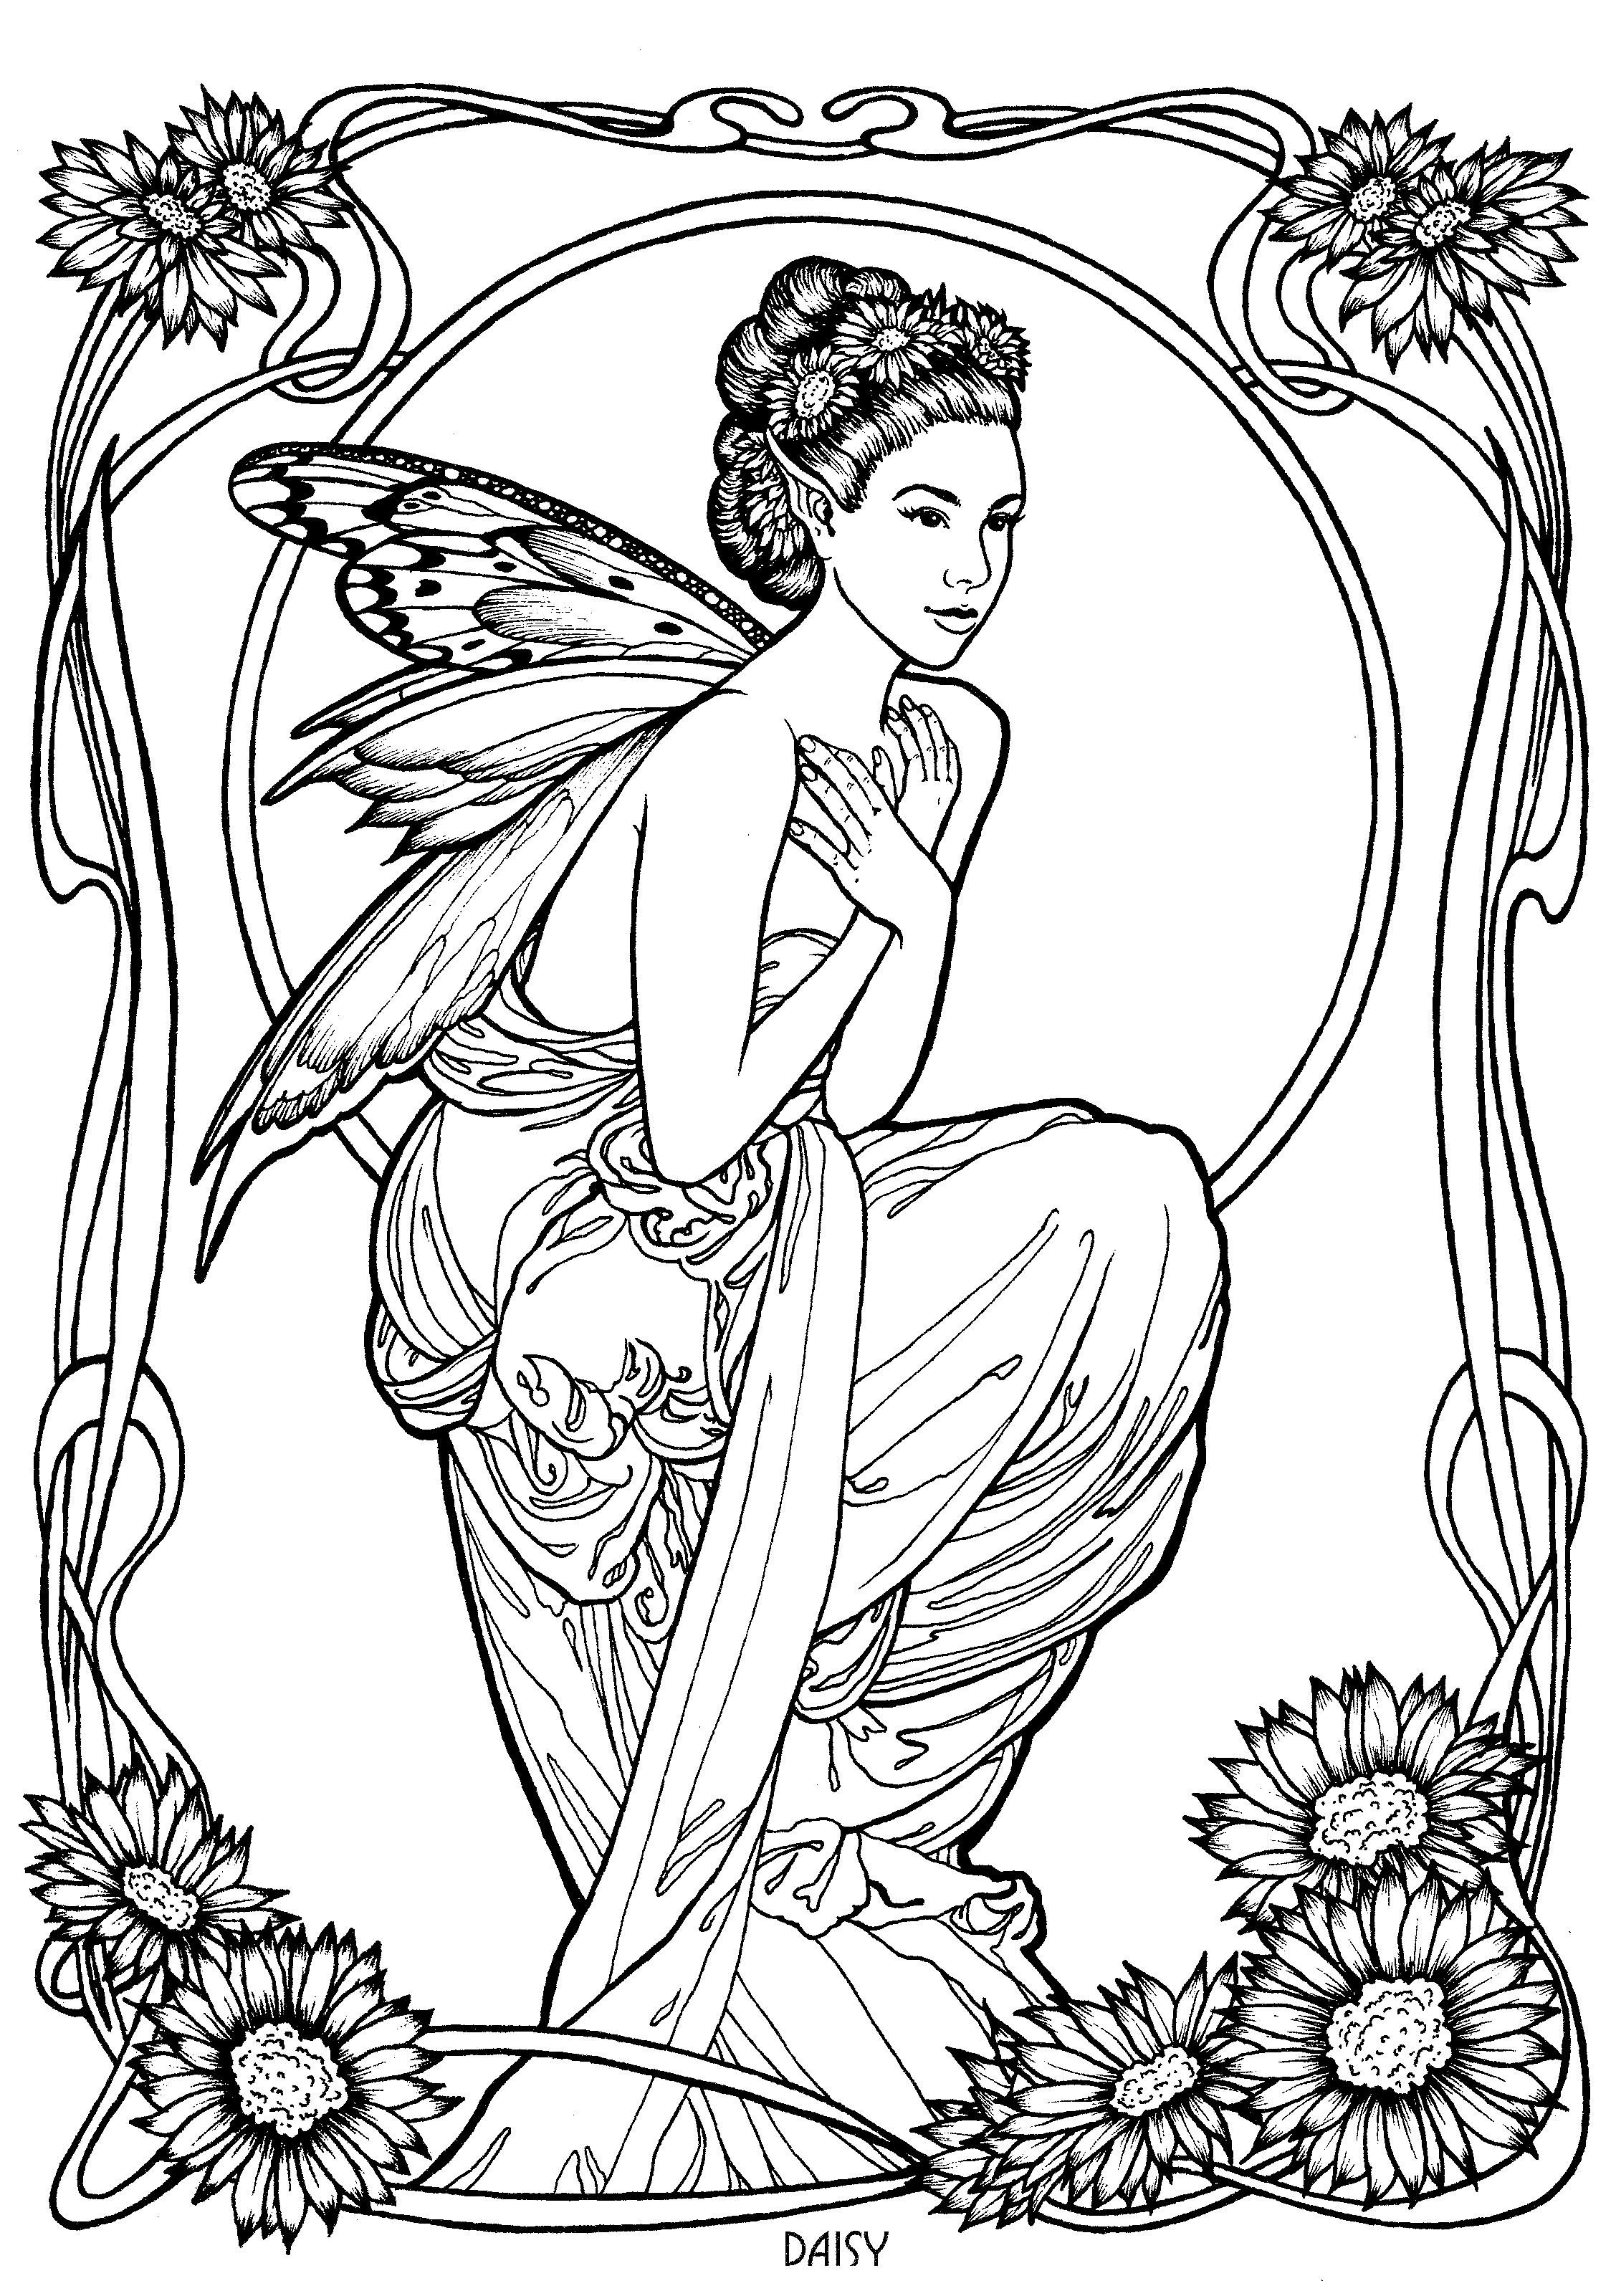 Fairy 16 | Coloring & Drawing | Pinterest | Fairy, Coloring books ...